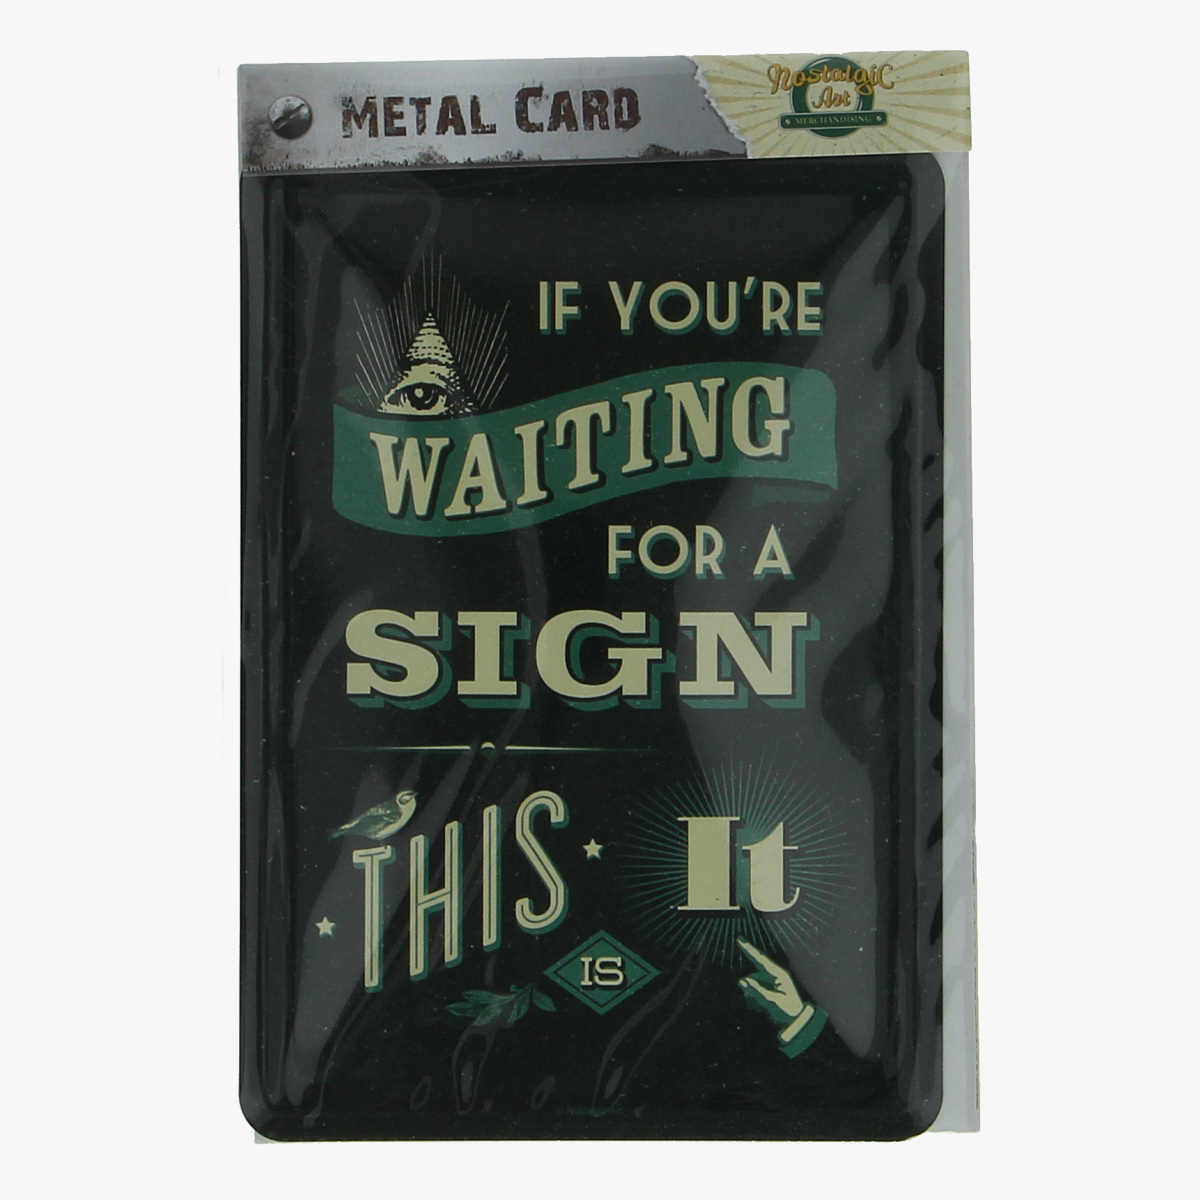 Afbeeldingen van metal card if you're waiting for a sign this is it